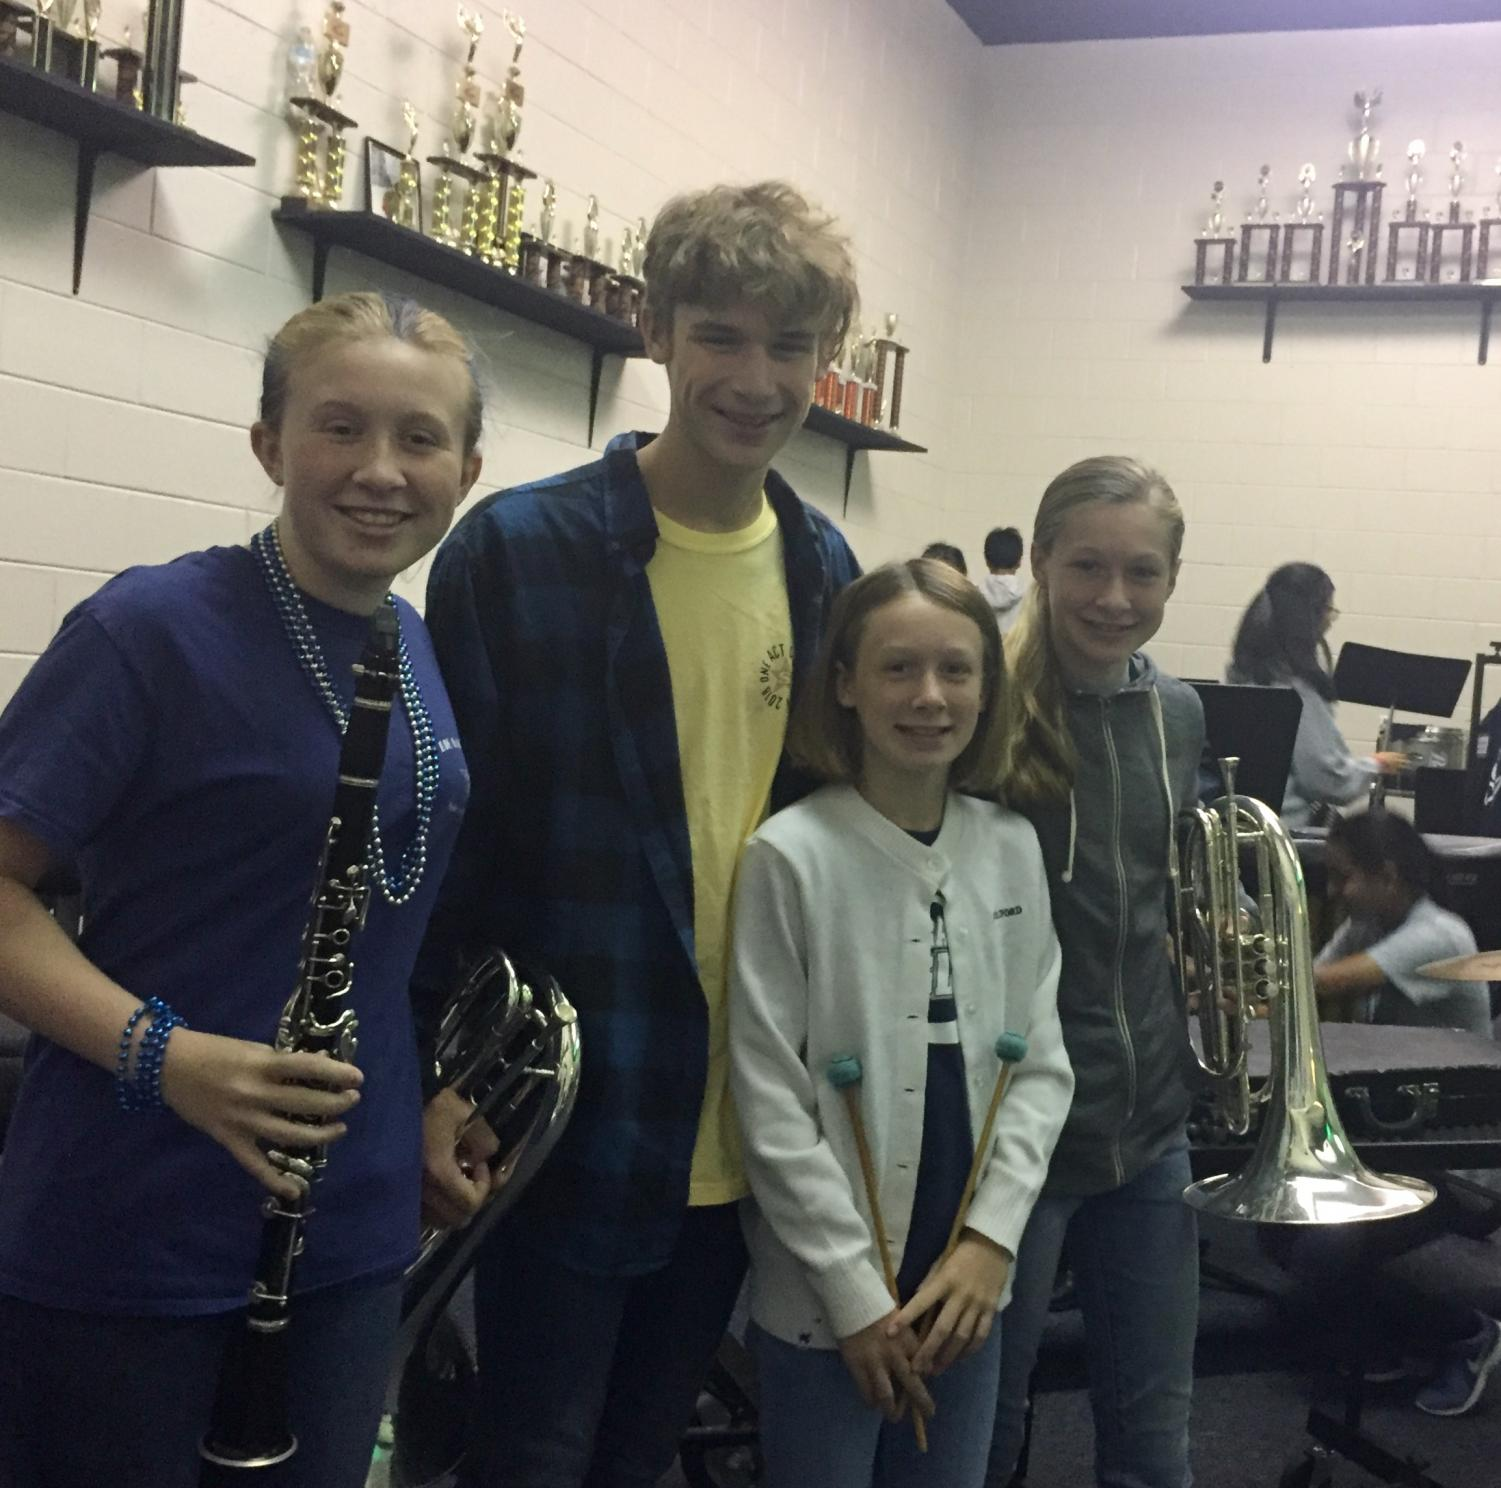 (L-R) Nora, Benjamin, Ginny, and Gracie Jorgensen pose in the band room.